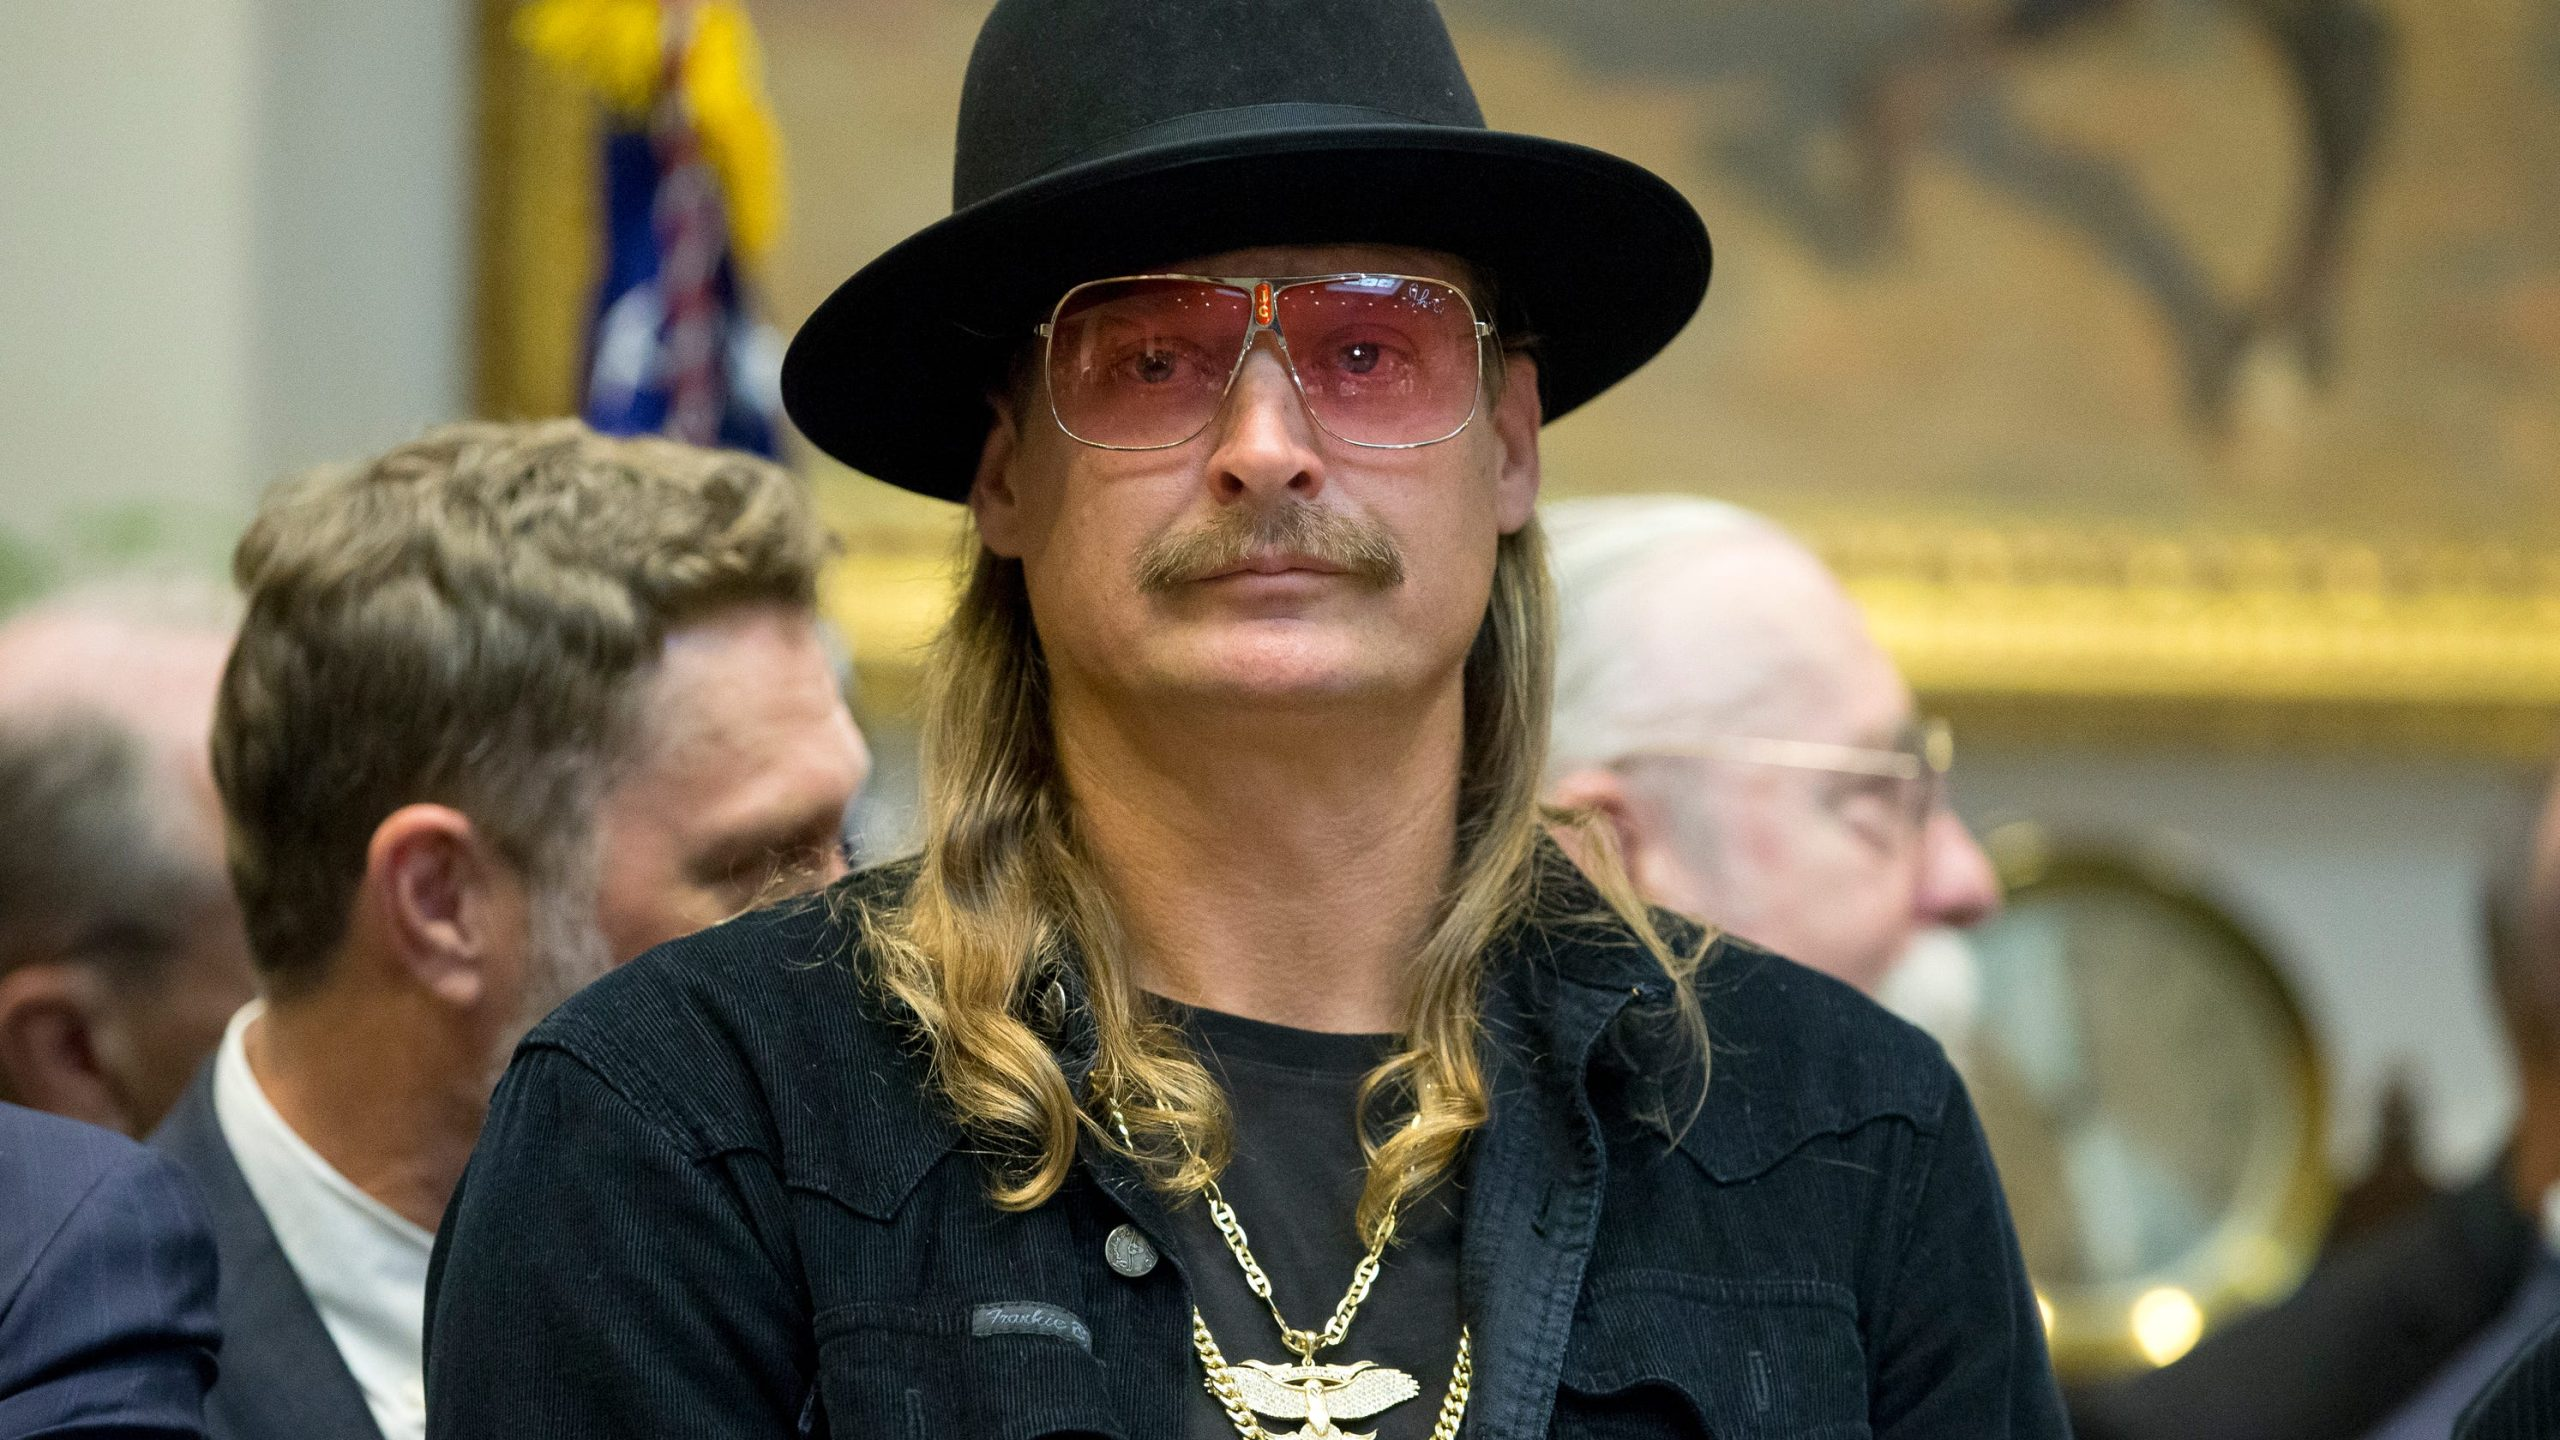 Latest in Music Kid Rock unleashes profanity-filled stage tirade against Oprah, follows up with tweet – USA TODAY